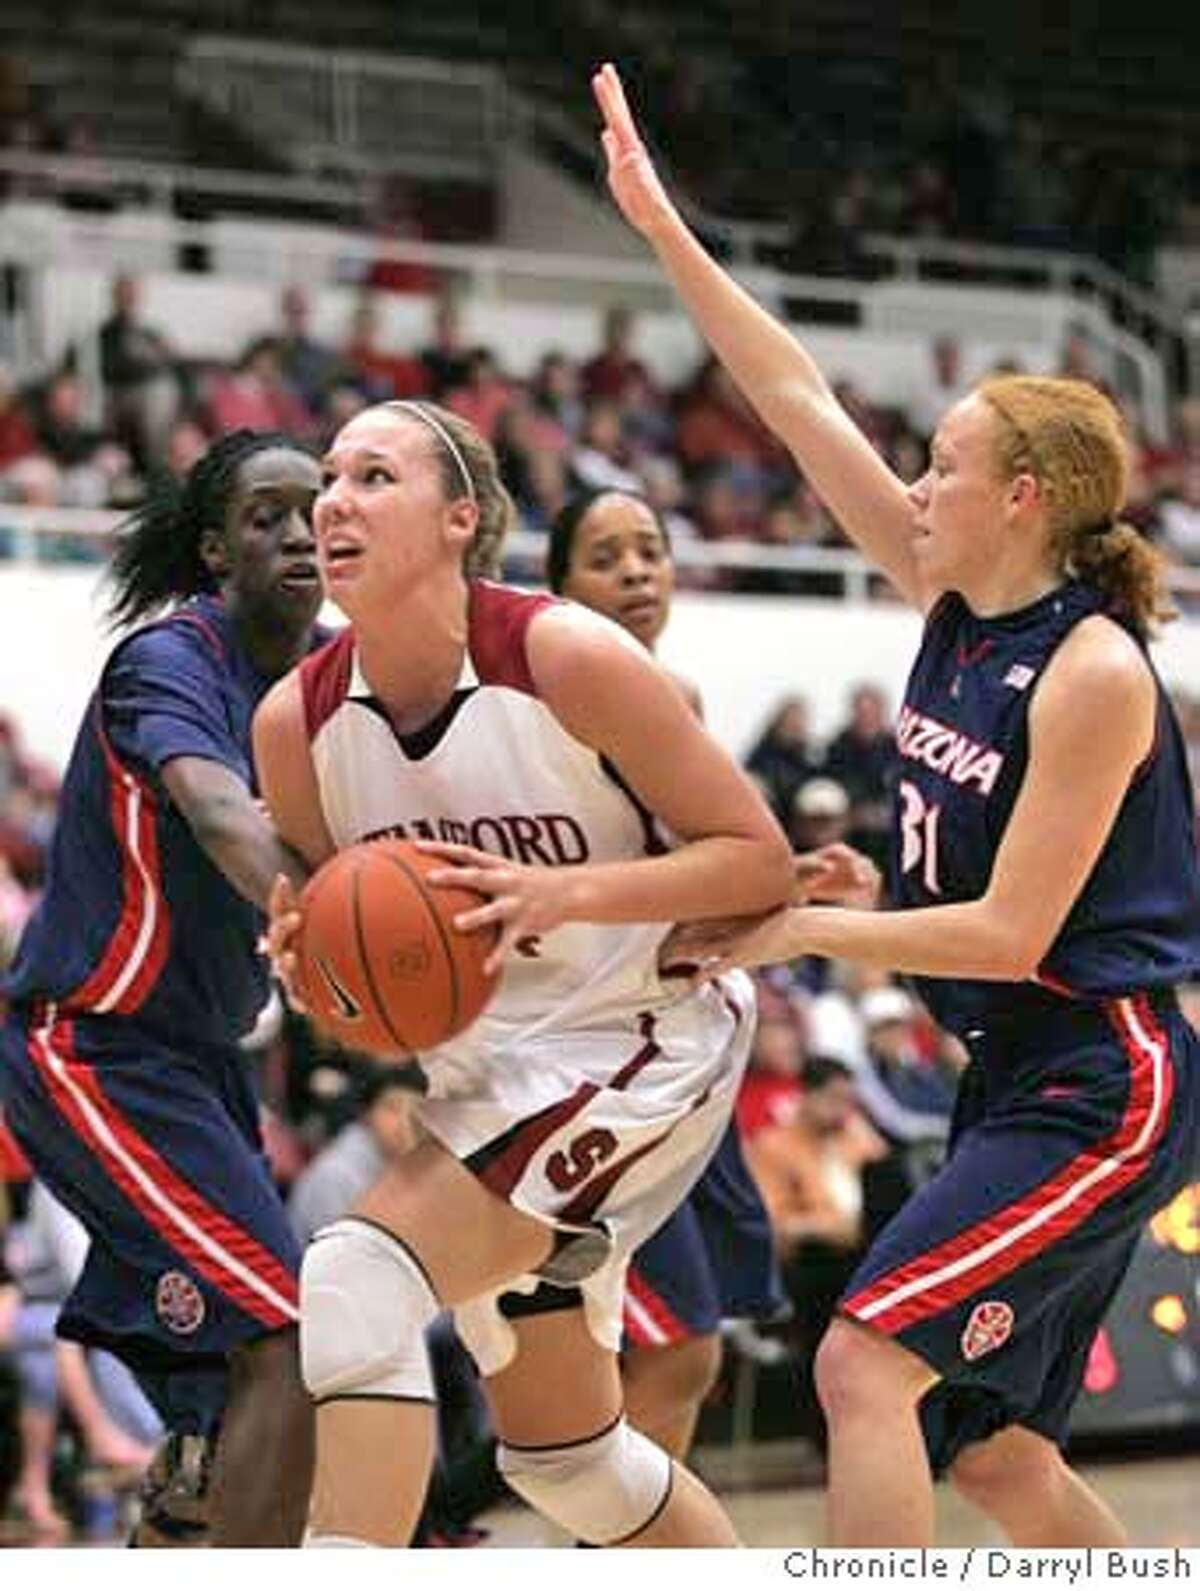 Stanford's Kayla Pedersen, center, drives to the basket past Arizona's Ashley Gilpin, right, in the first half of their NCAA basketball game in Stanford, Calif., Thursday, Feb. 14, 2008. (AP Photo/Darryl Bush)